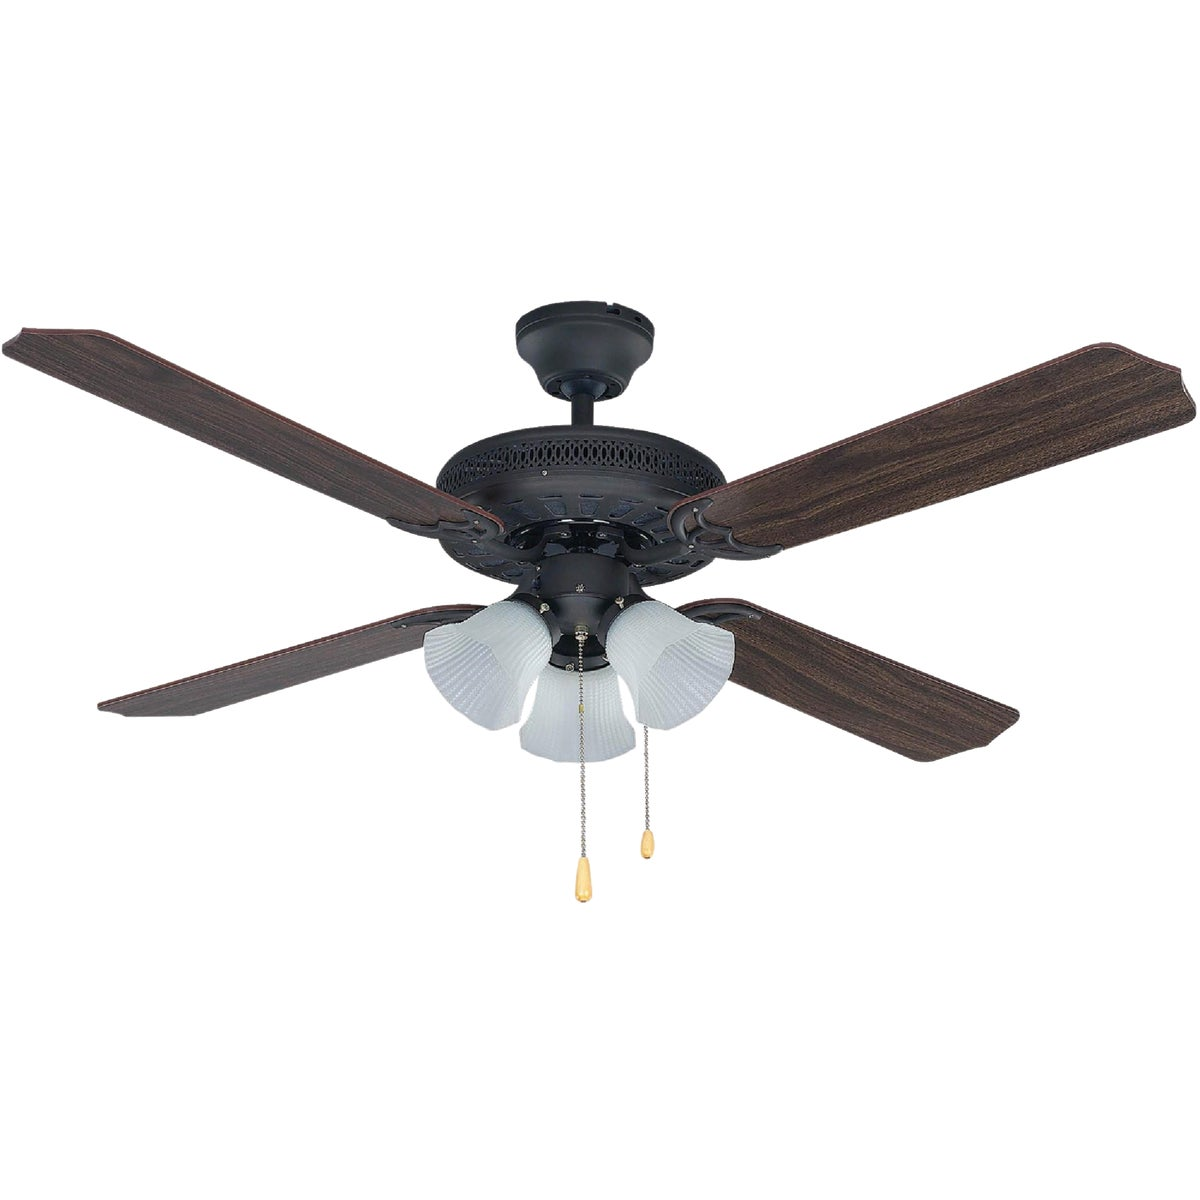 "52"" CHATEAU ORB CEIL FAN - CF52CHA4ORB by Canarm Gs"